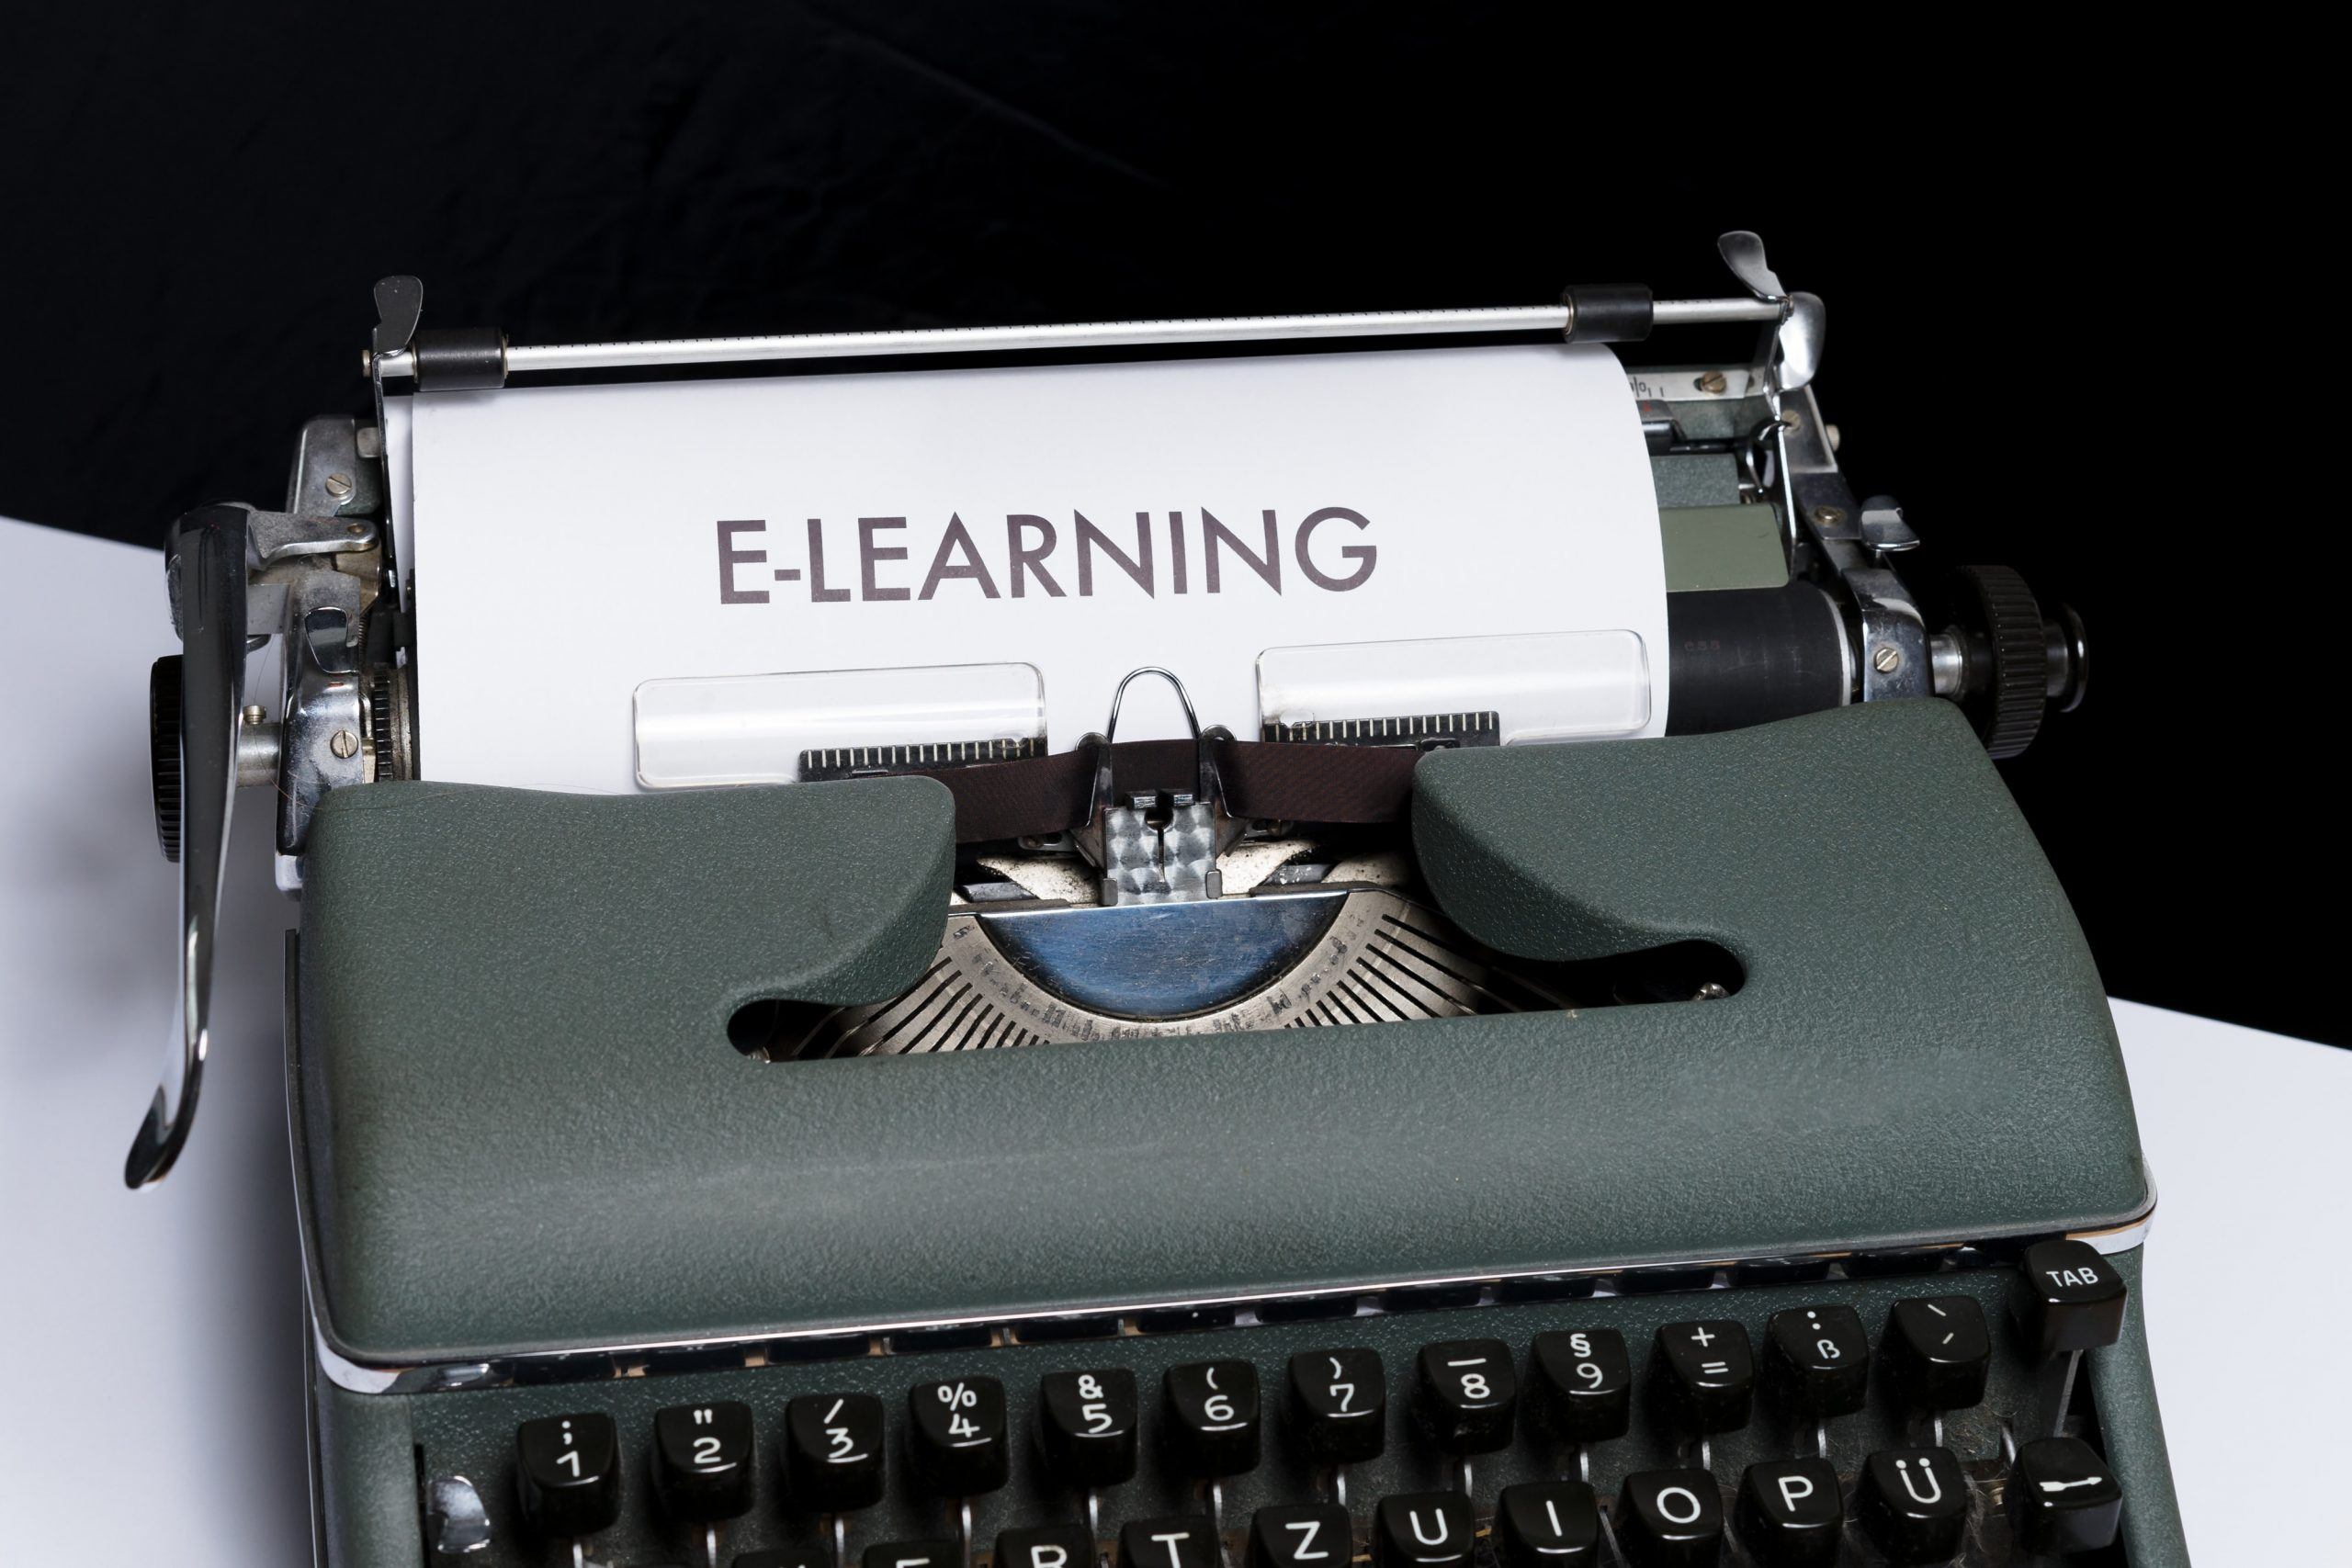 Every Employee in Distance Learning Institutions must be an e-Learner